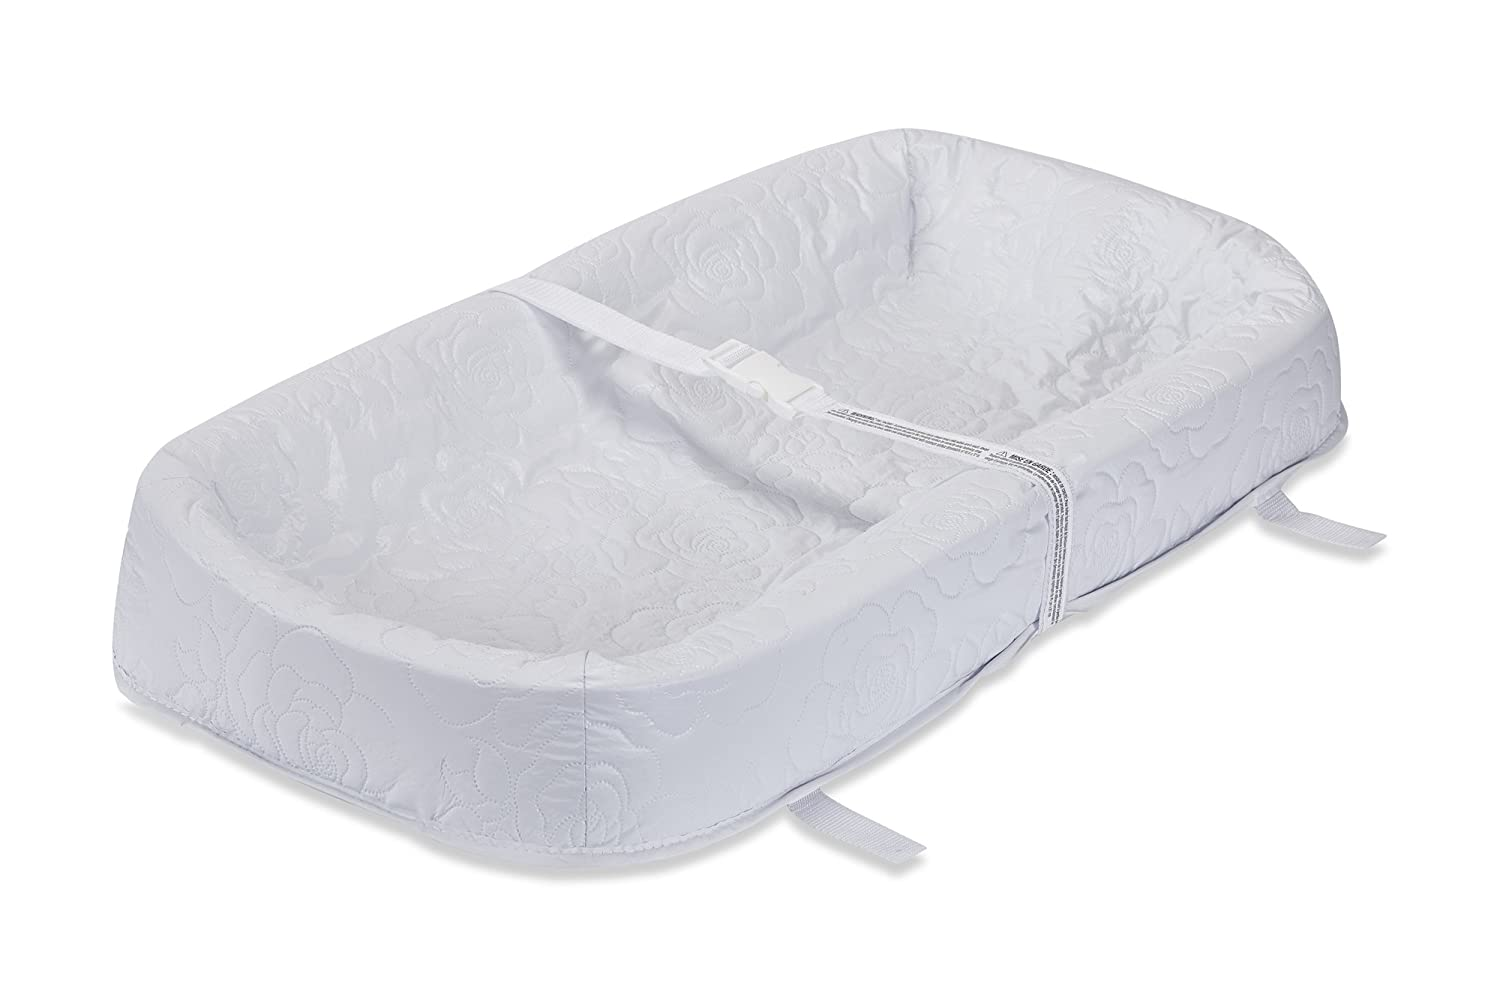 LA Baby 30 4 Sided Changing Pad P-3400-32Q